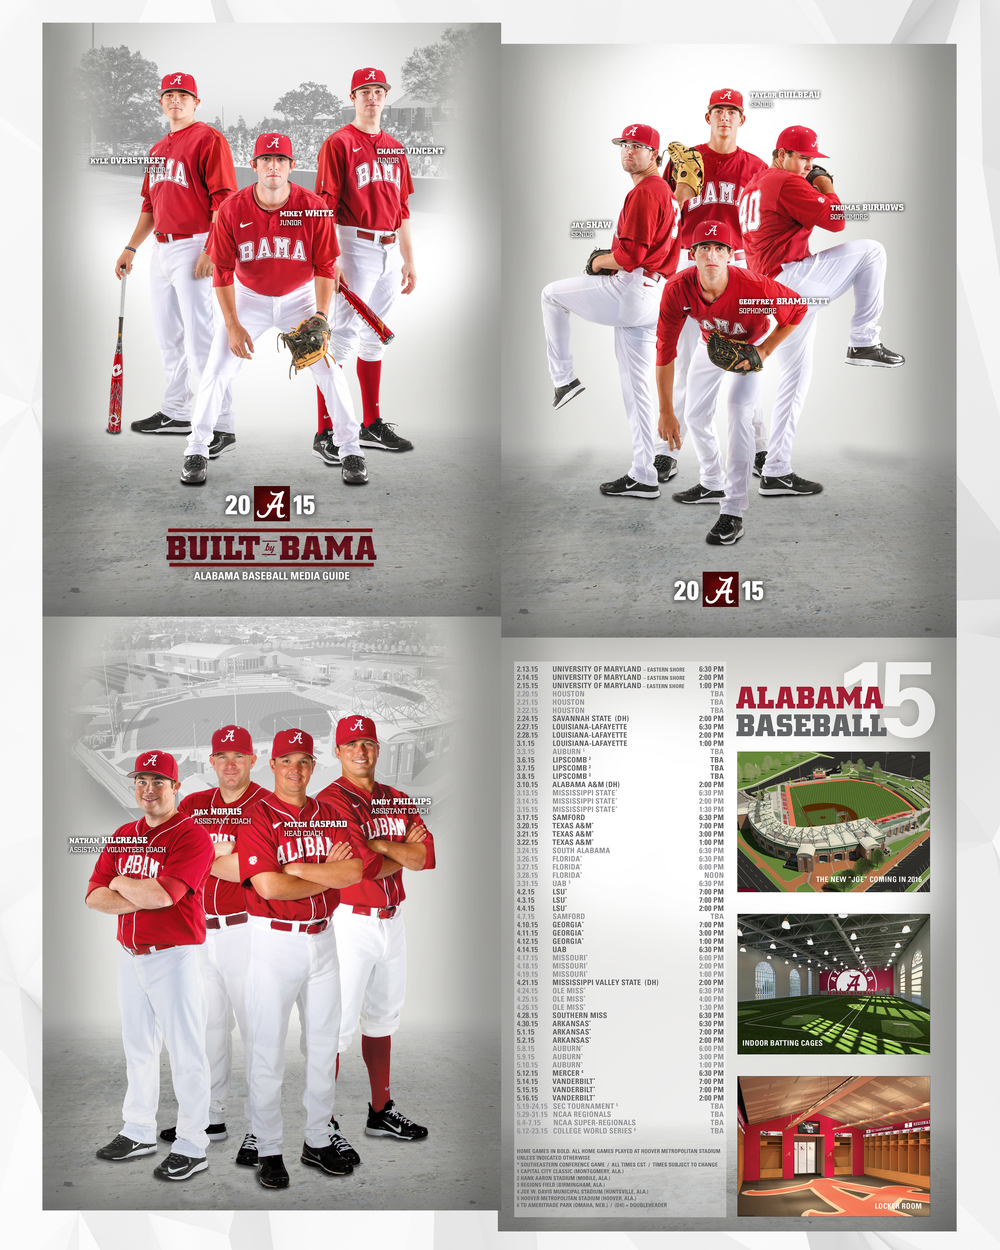 Alabama_Baseball_Media Guide.jpg